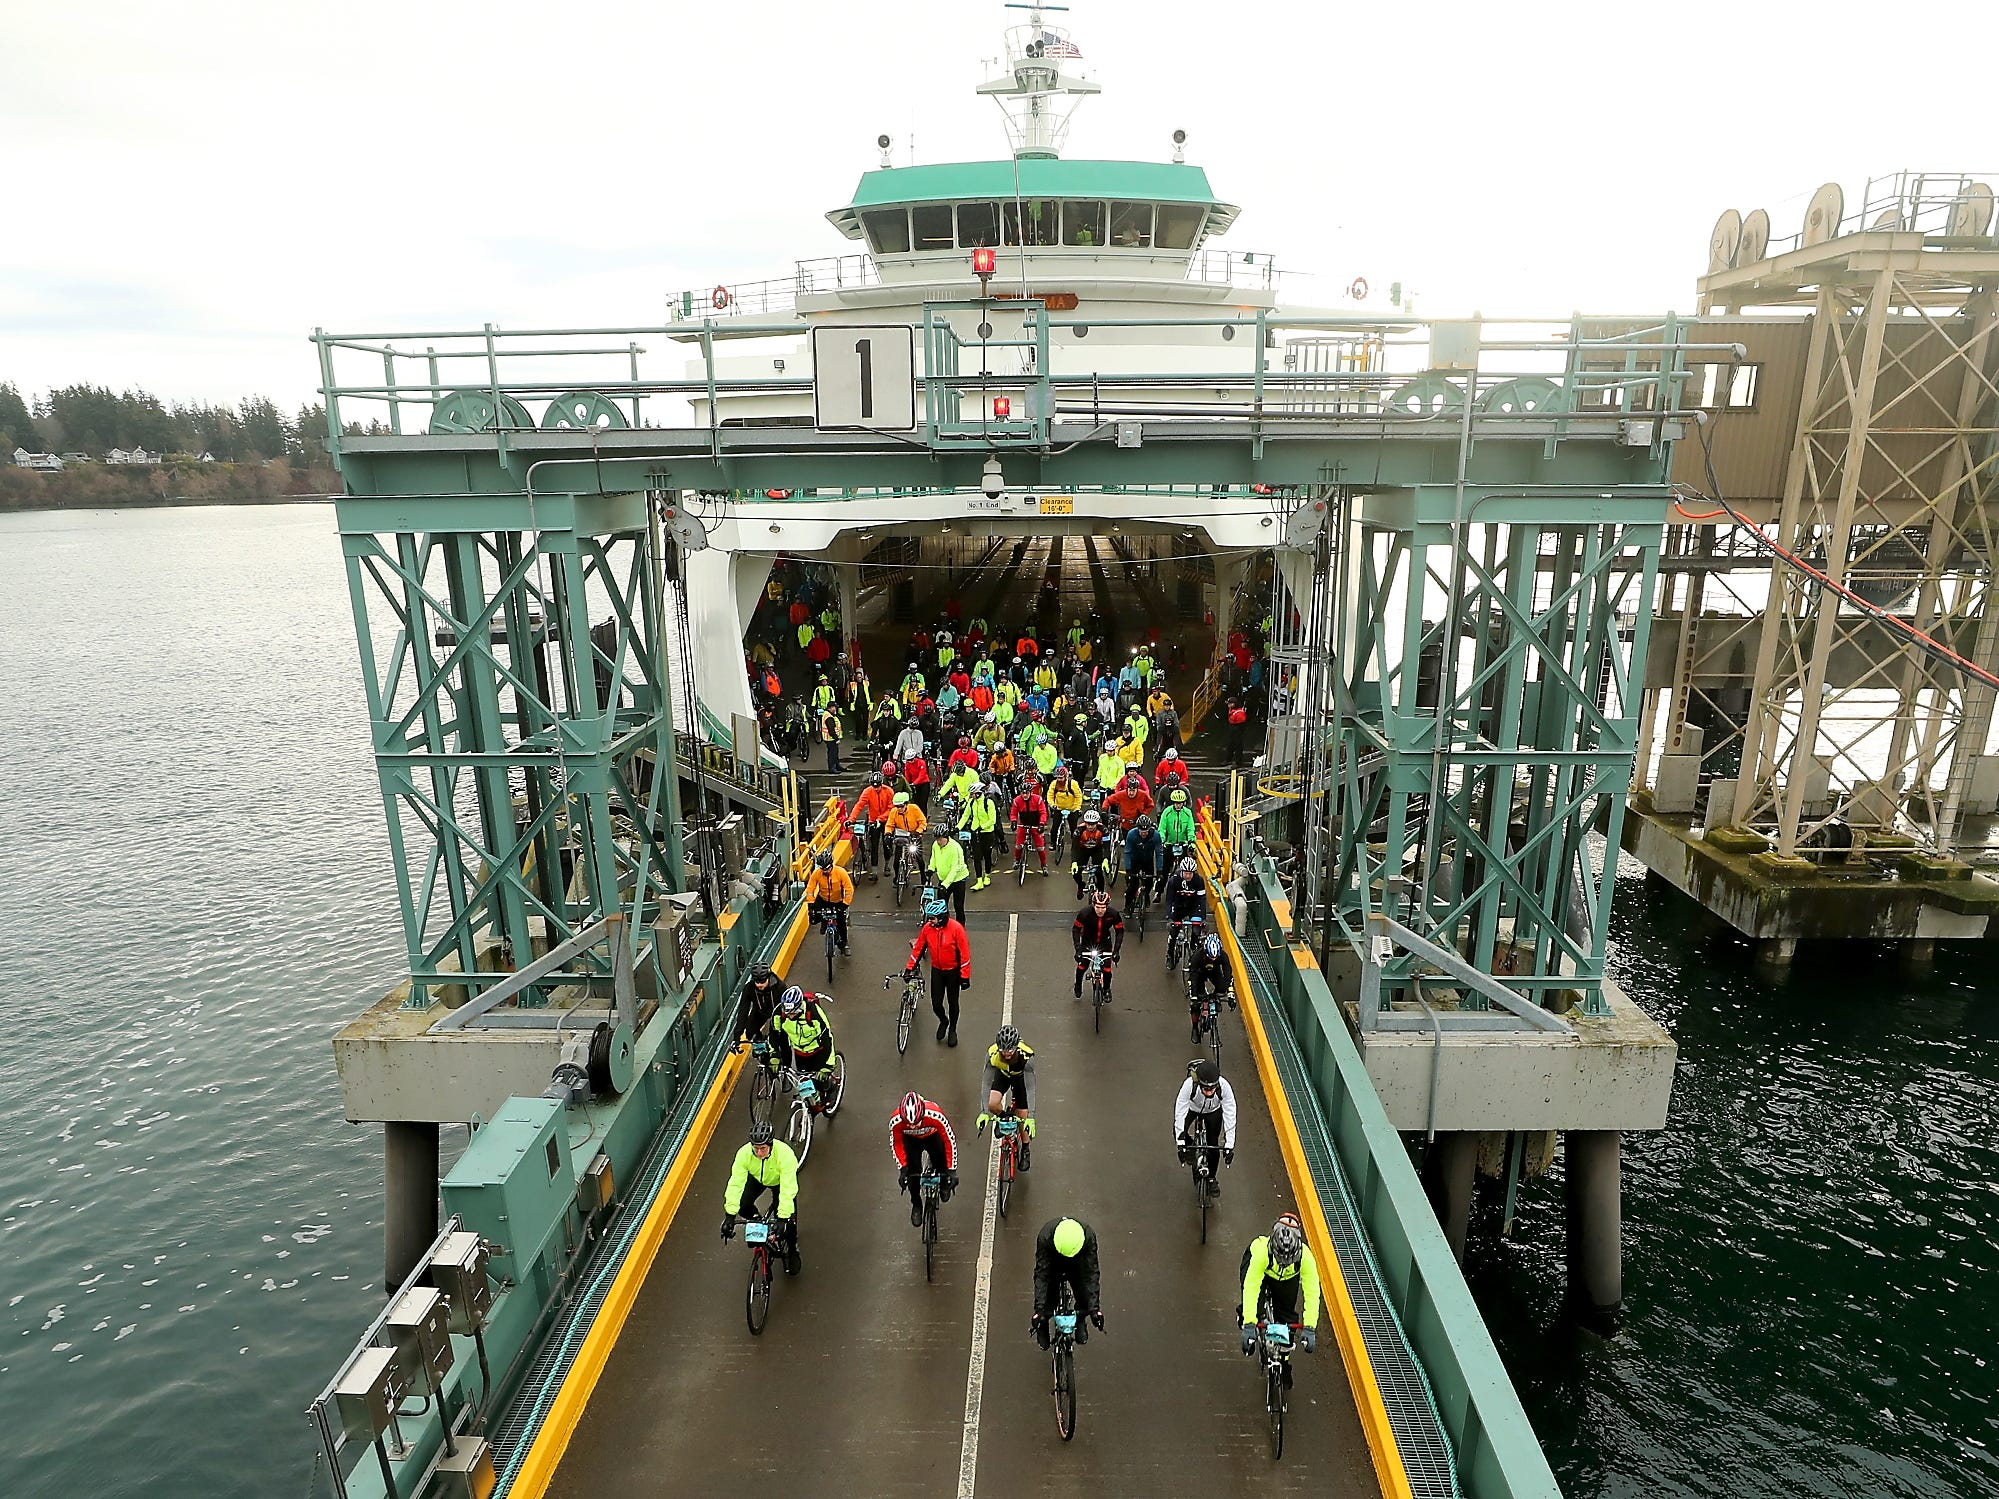 Cyclists disembark the Washington State Ferry Tacoma as they begin Cascade Bicycle Club's annual Chilly Hilly ride around Bainbridge Island on Sunday, February 24, 2019.